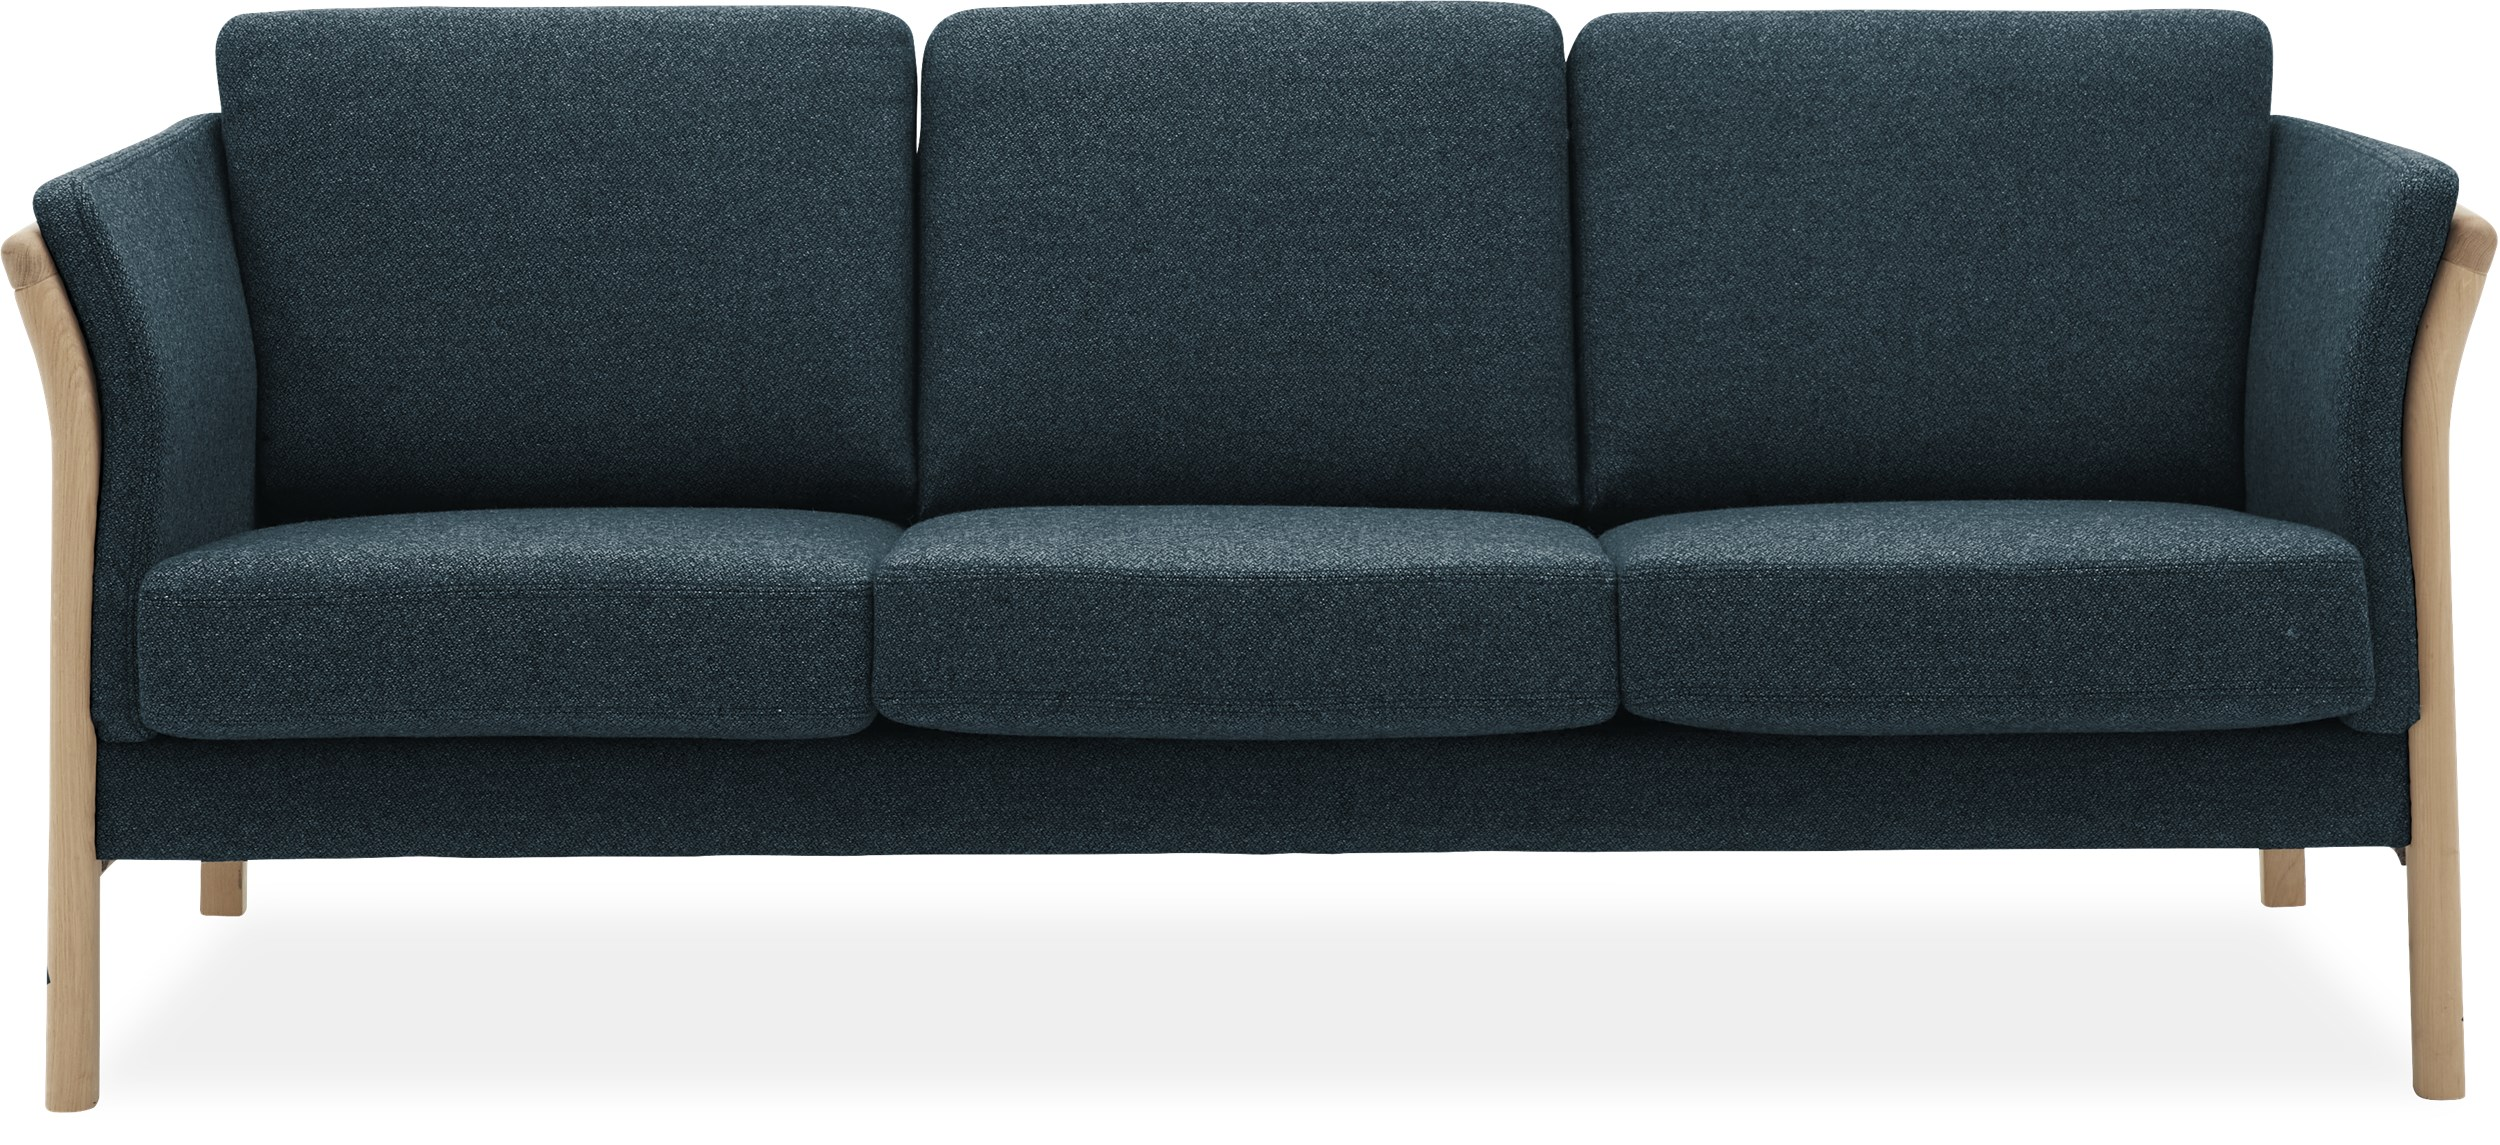 Absalon 3 pers Sofa